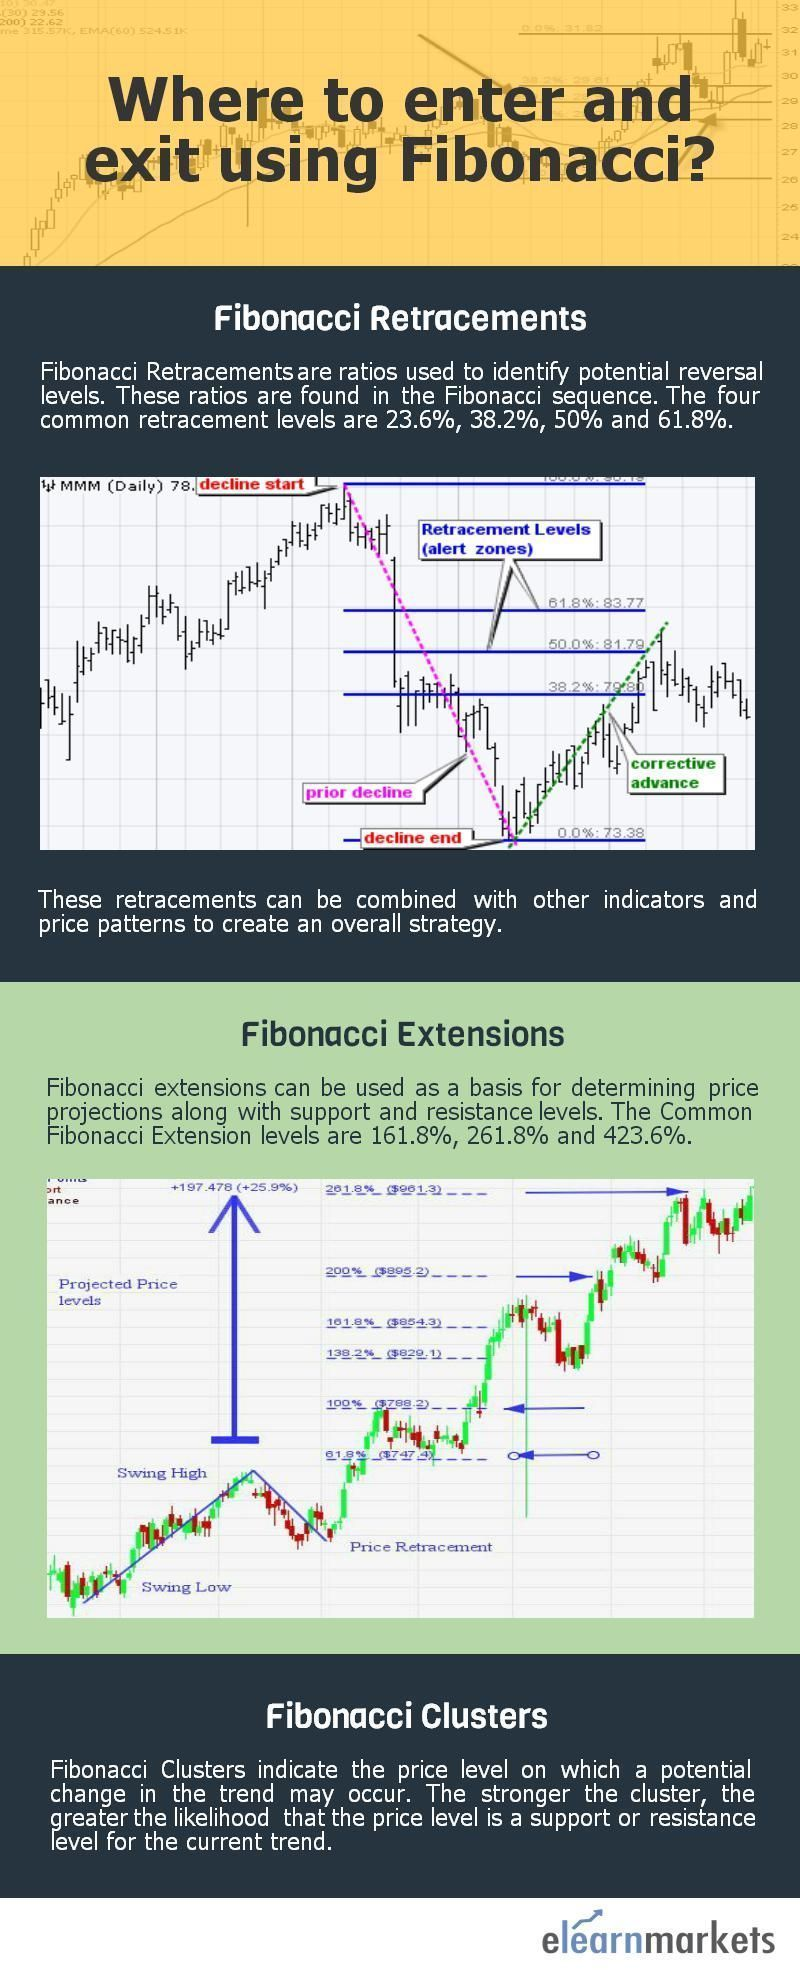 Epingle Par Money Trading Sur Day Trading For Beginners Analyse